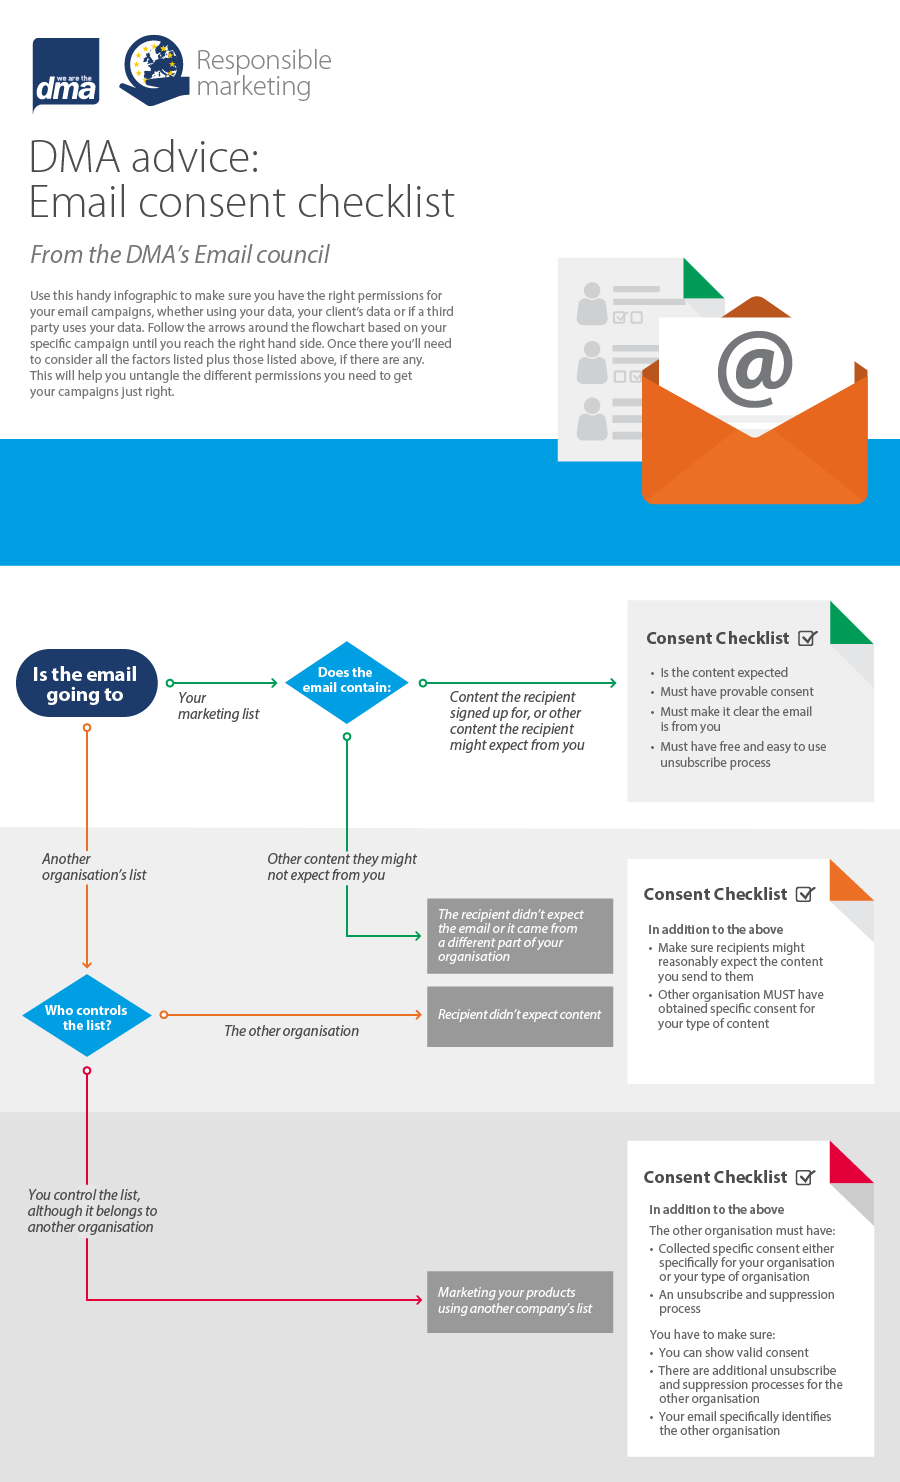 DMA advice: email consent checklist | DMA | Article | DMA advice